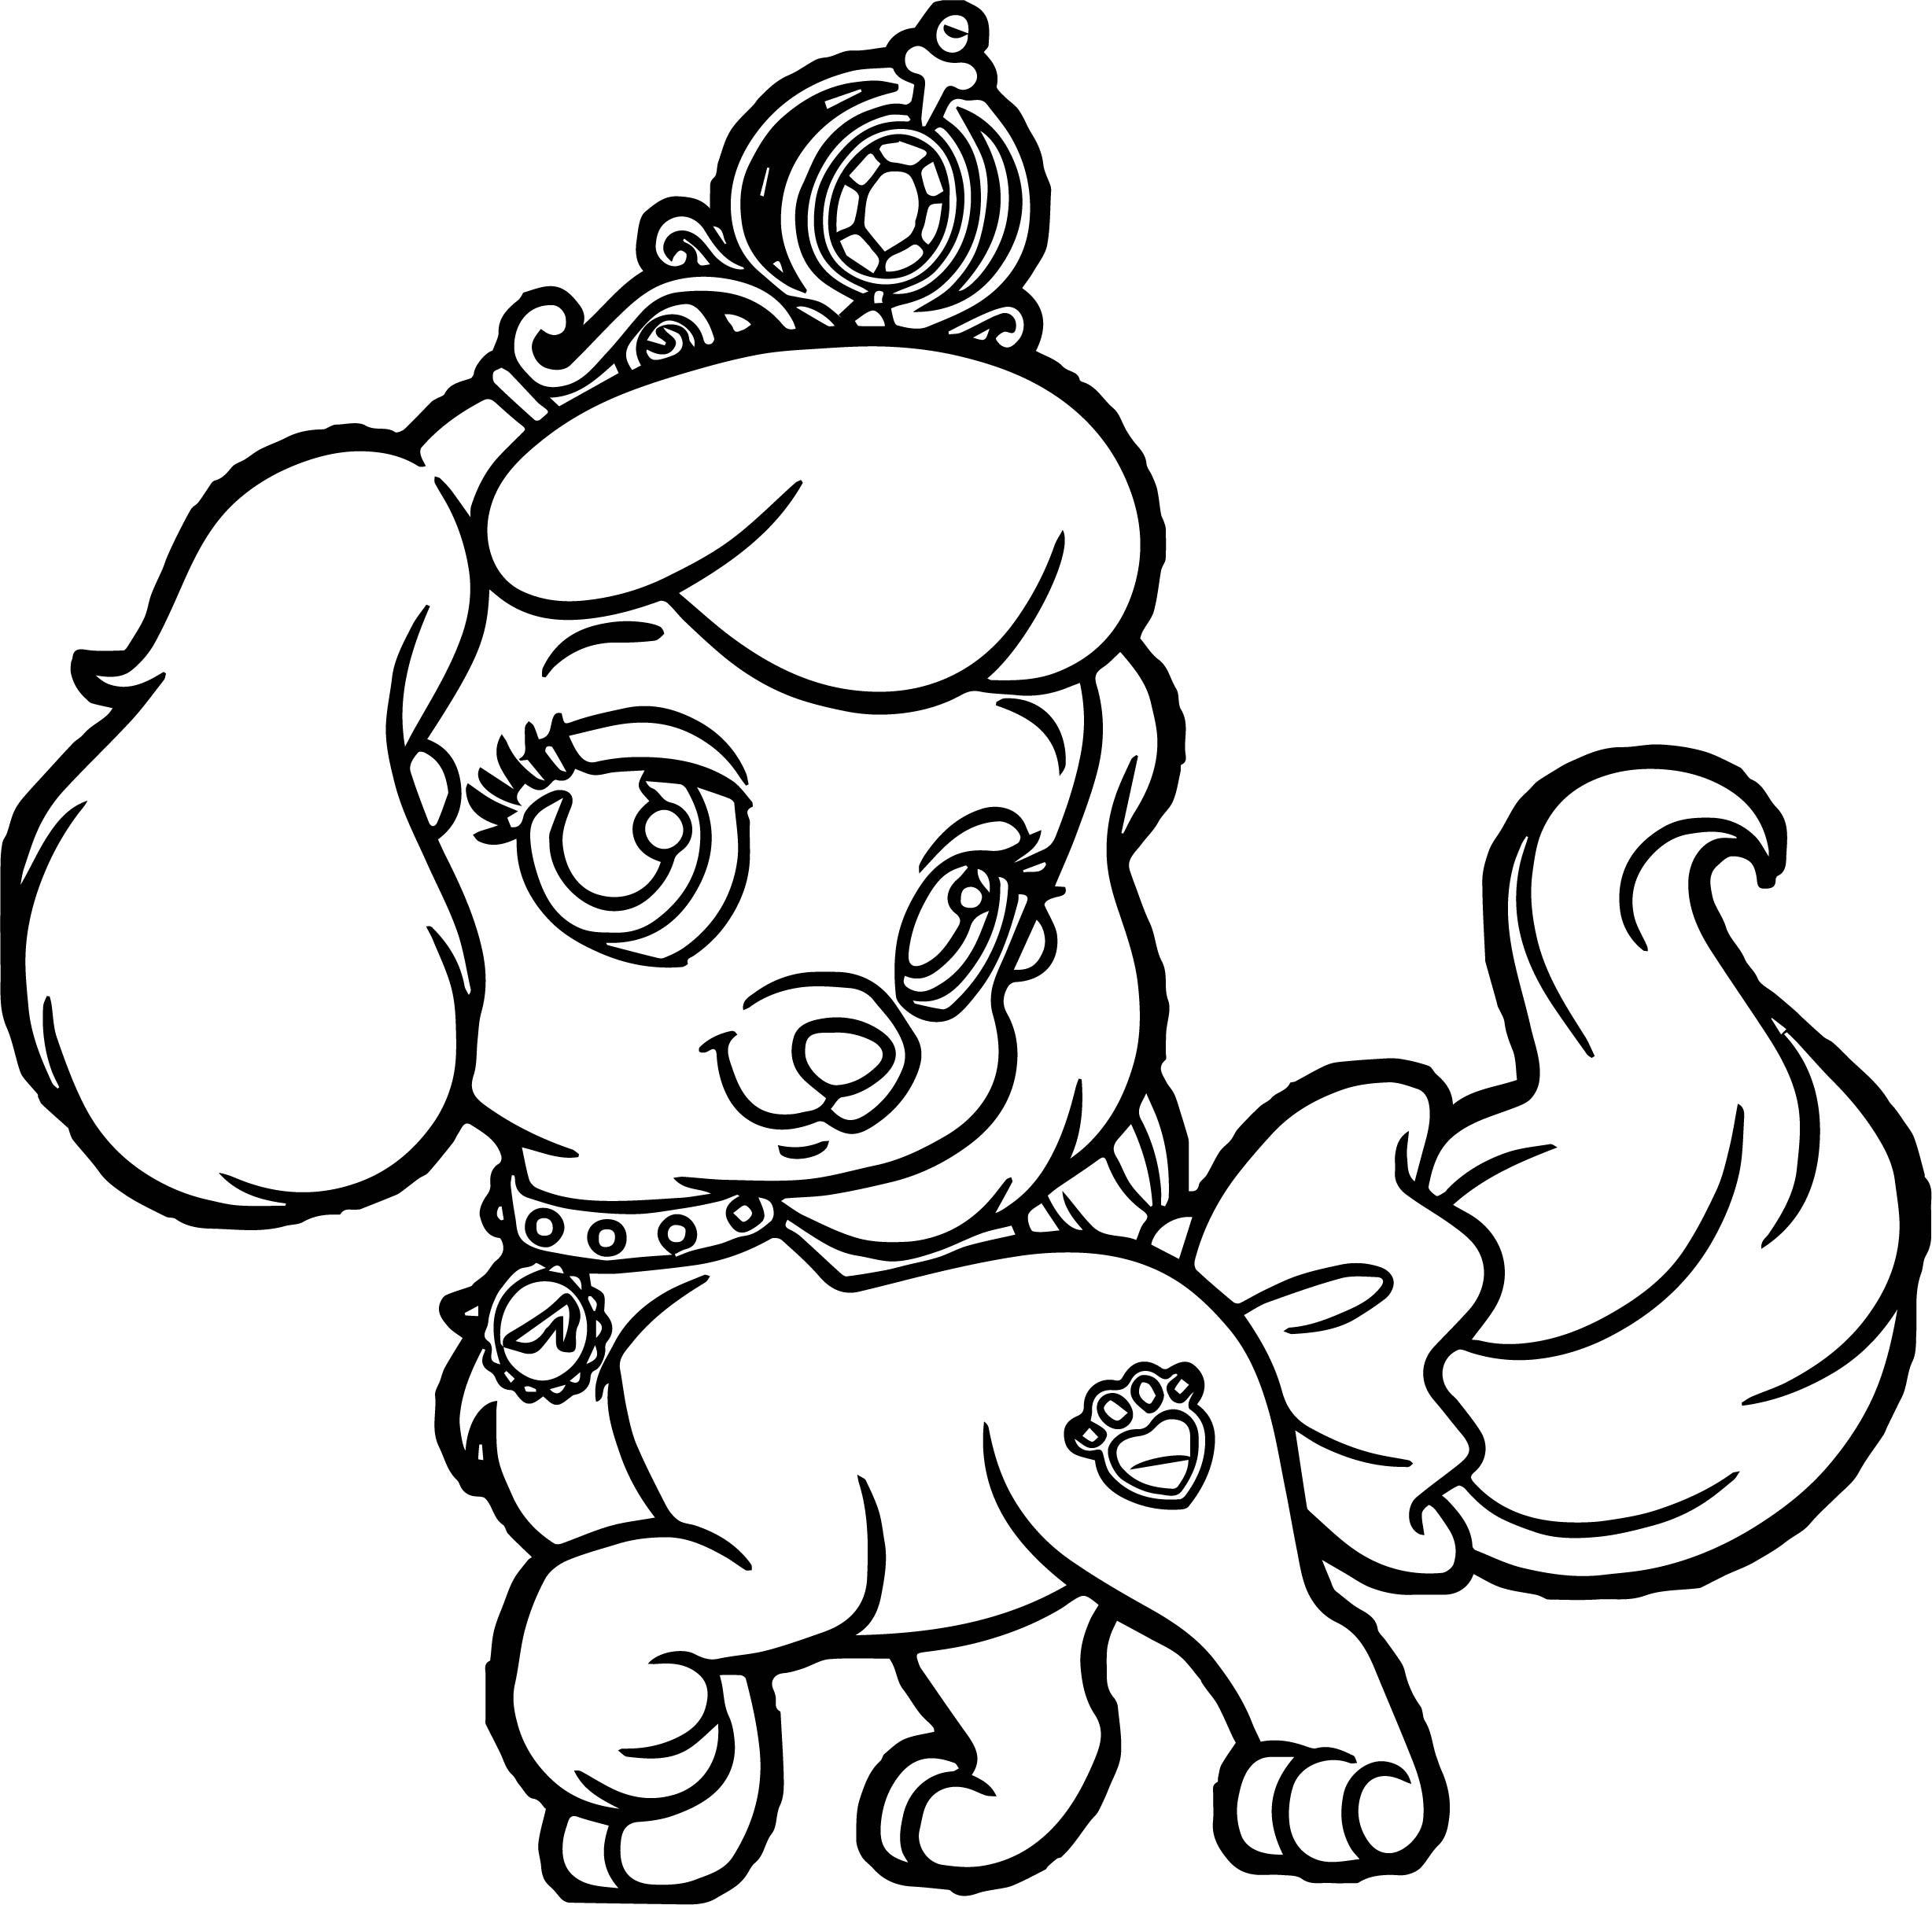 dogs colouring baby dog coloring page free coloring pages online colouring dogs